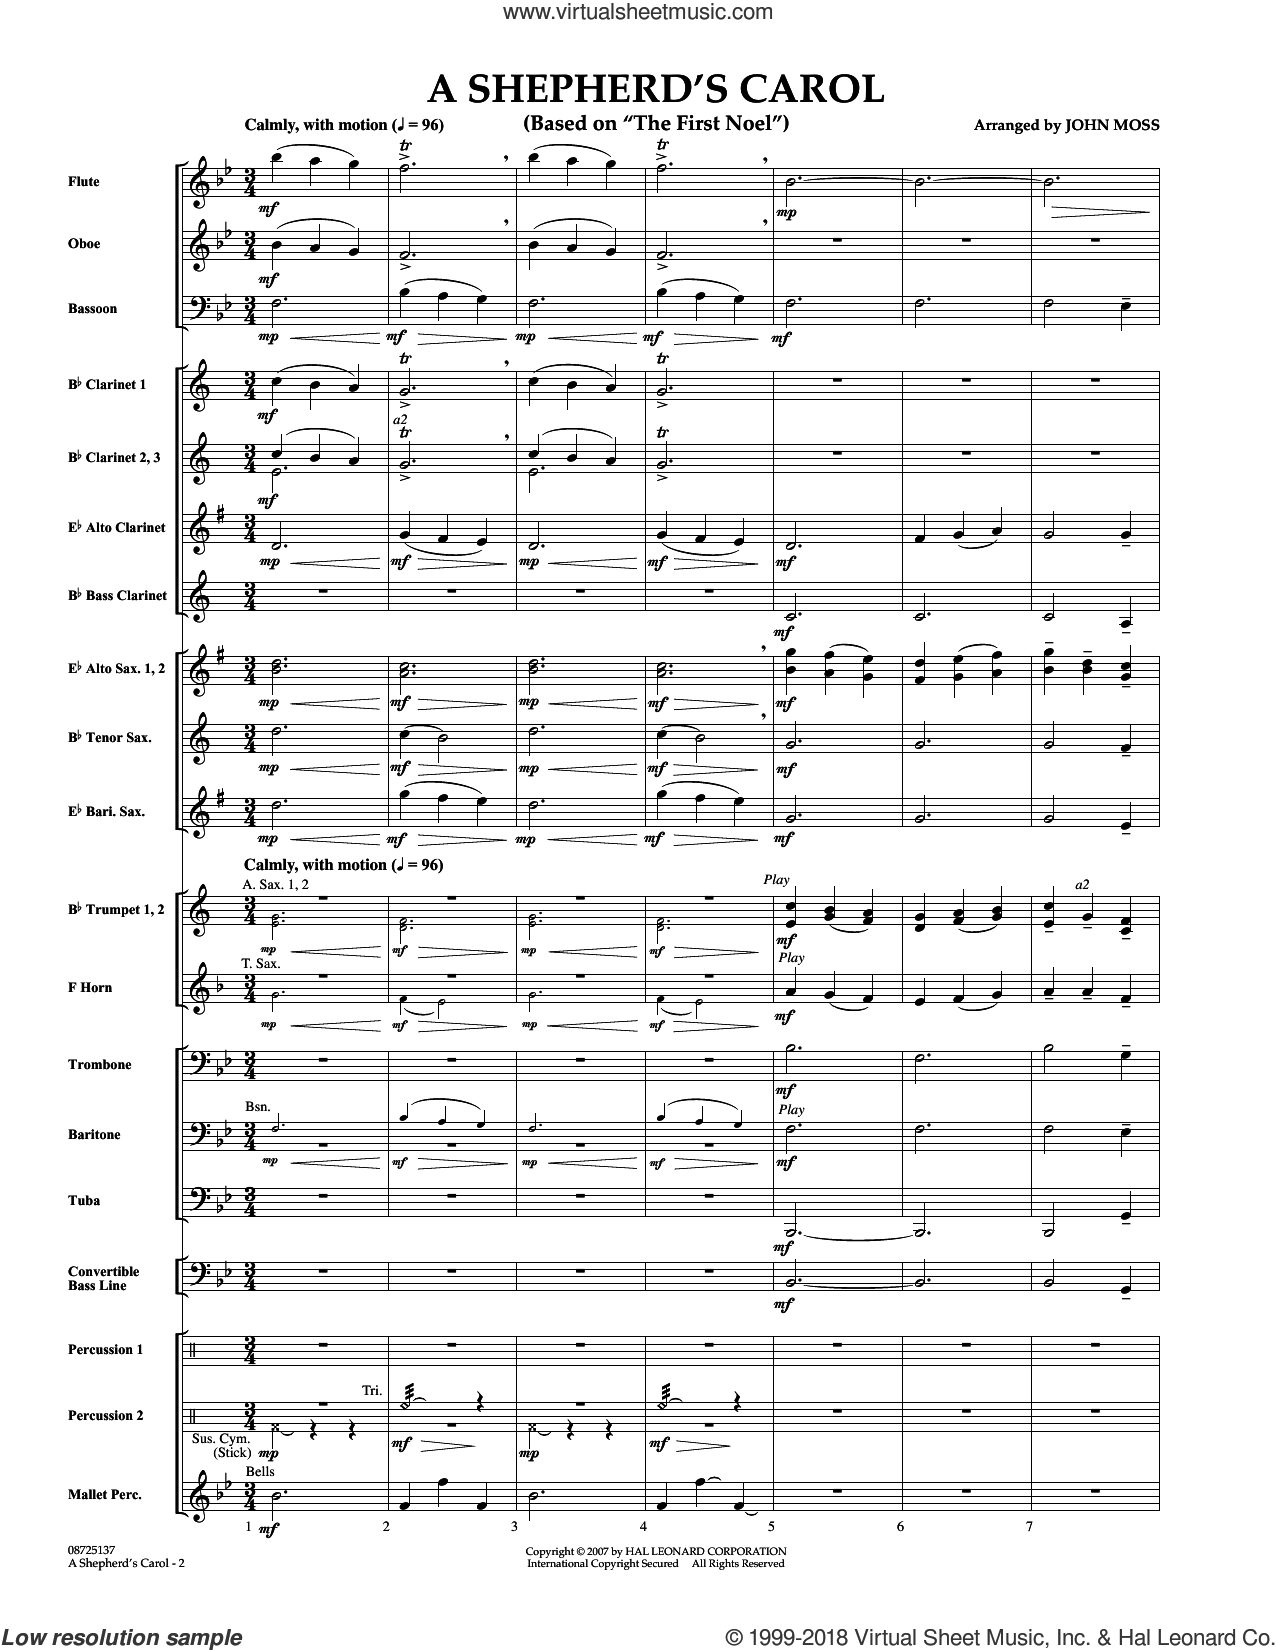 A Shepherd's Carol (Based On The First Noel) (COMPLETE) sheet music for concert band by John Moss, intermediate